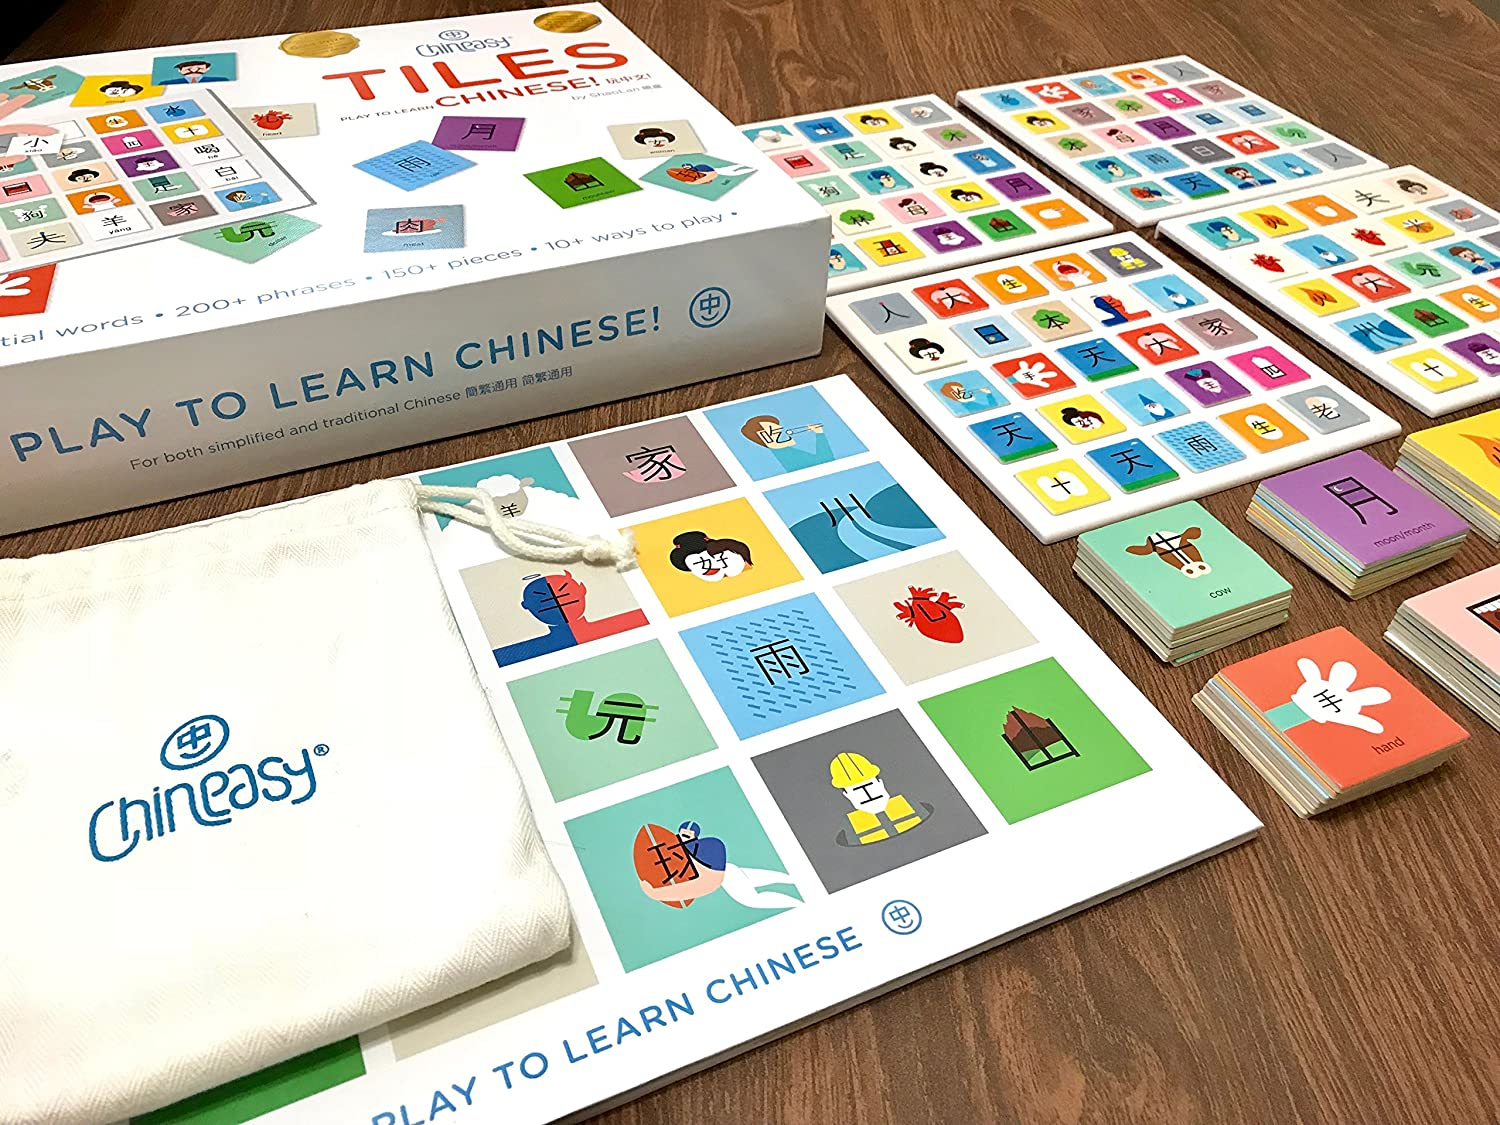 Chineasy Tiles A Game For All Ages That Makes Learning Chinese Fun